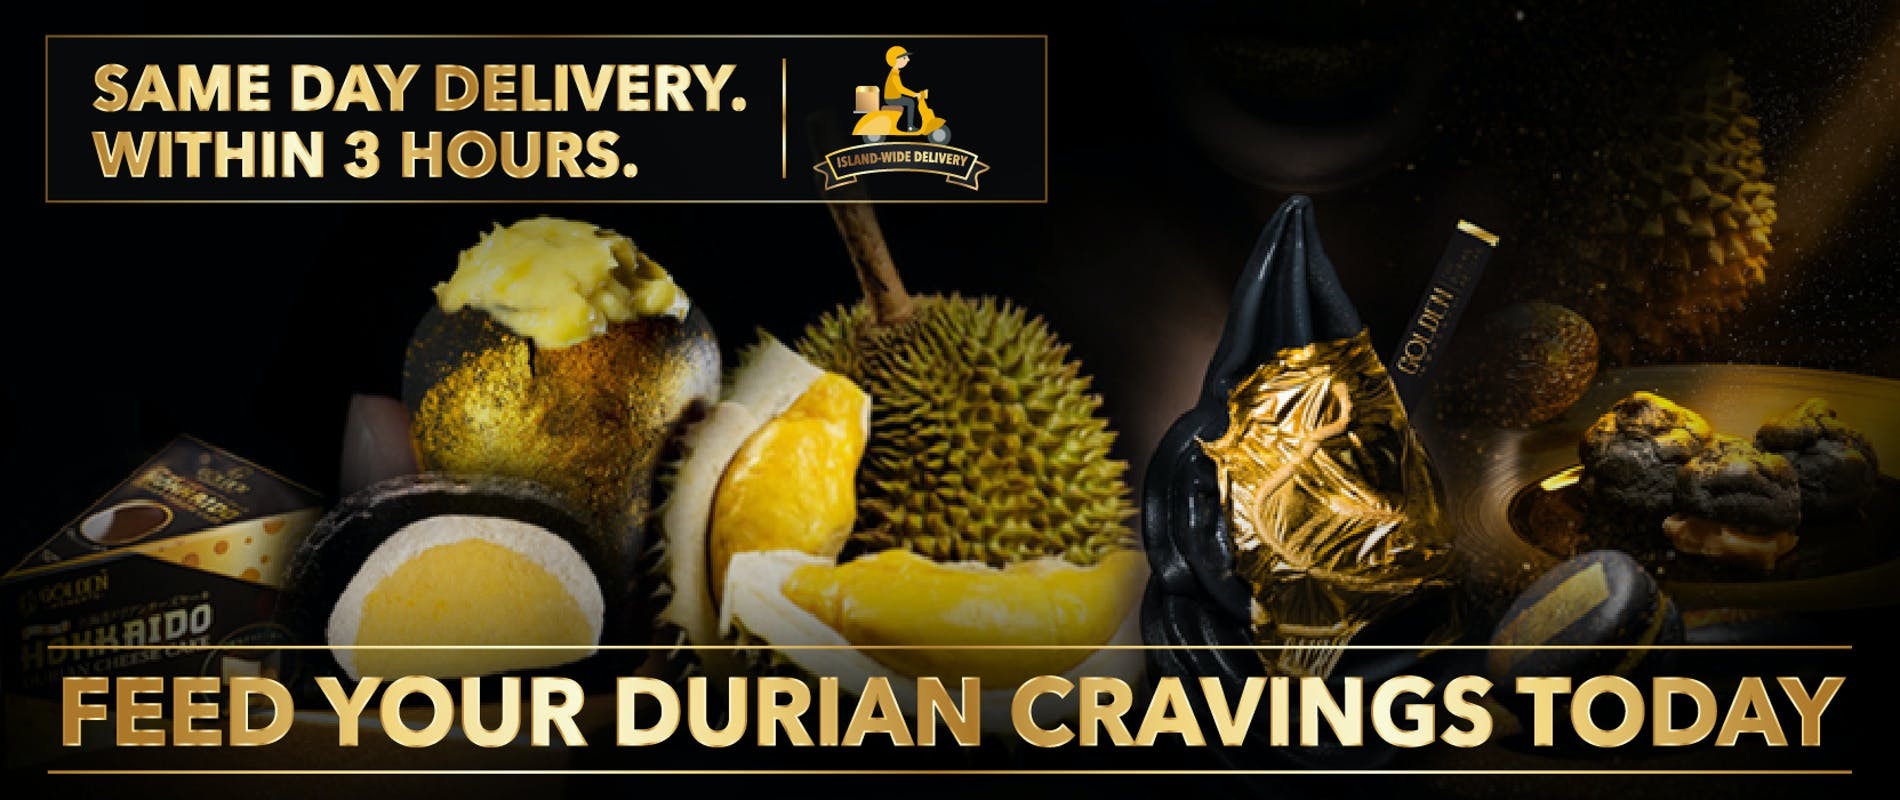 FEED YOUR DURIAN CRAVINGS TODAY!